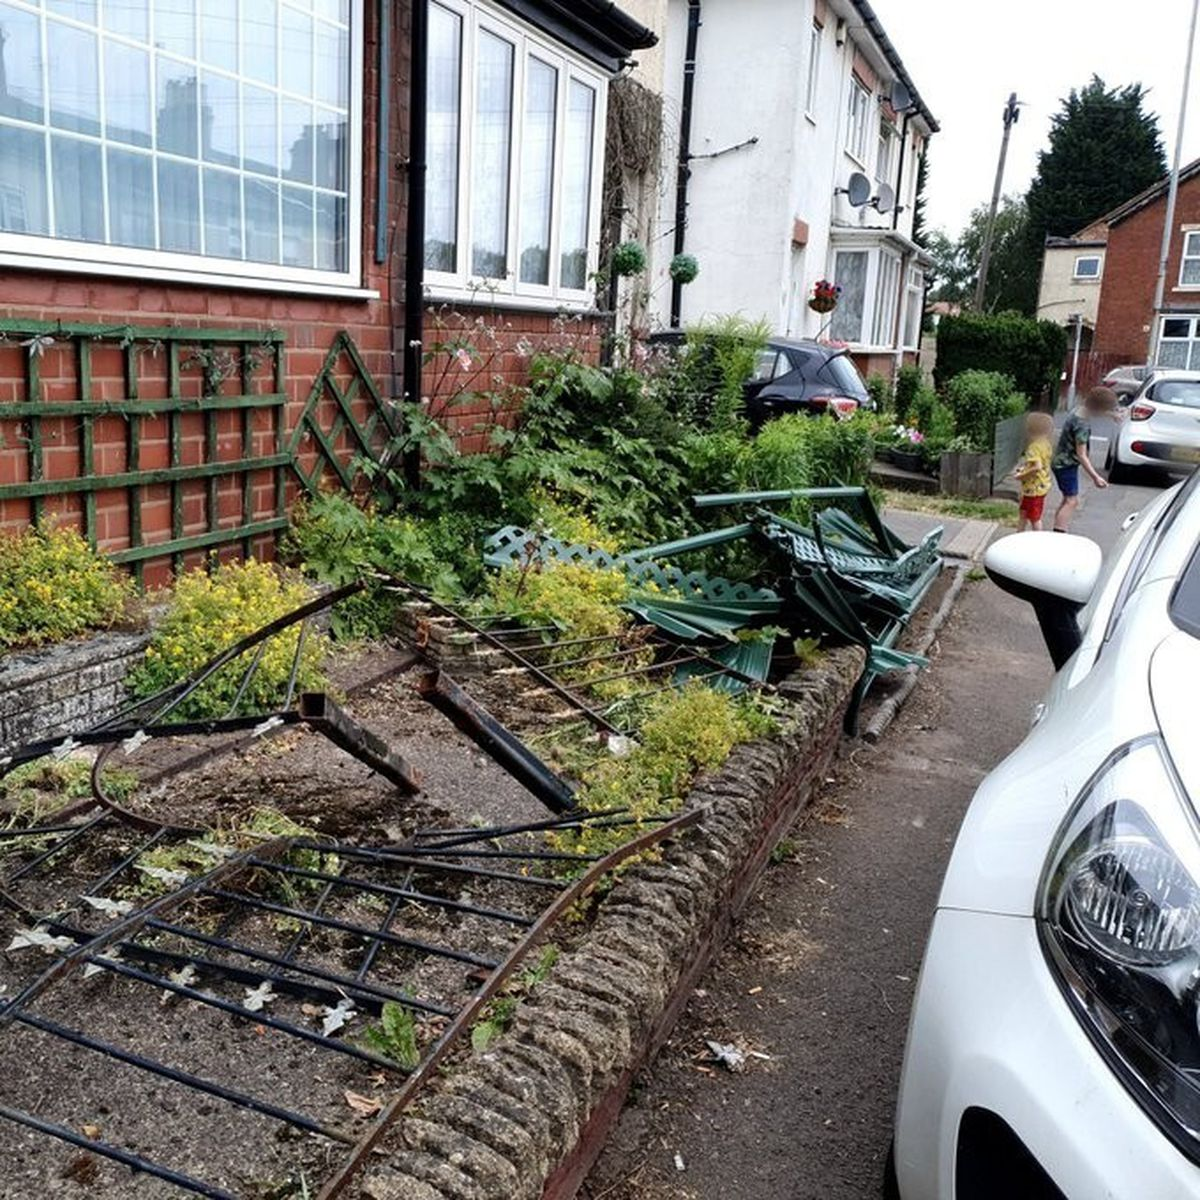 The collision also caused damage to fencing along Aldersley Road. Photo: Si G